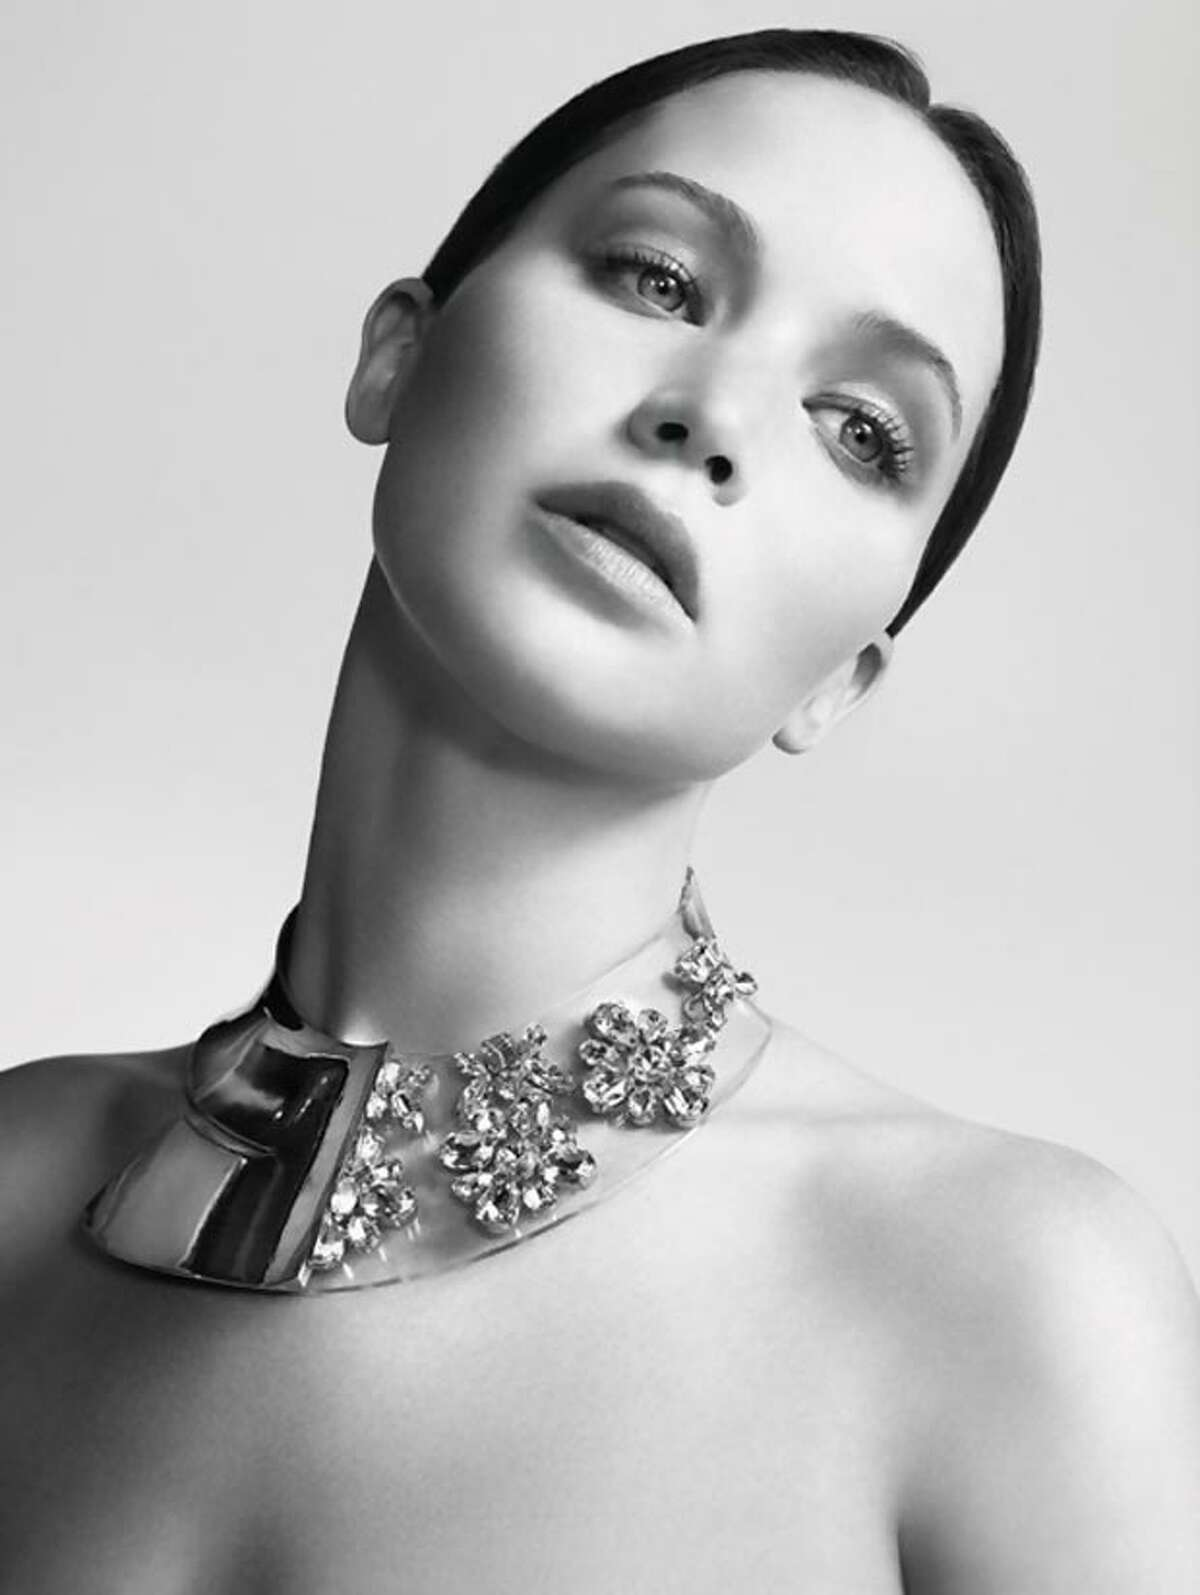 Jennifer Lawrence in a Dior necklace as a part of the brand's new advertising campaign.